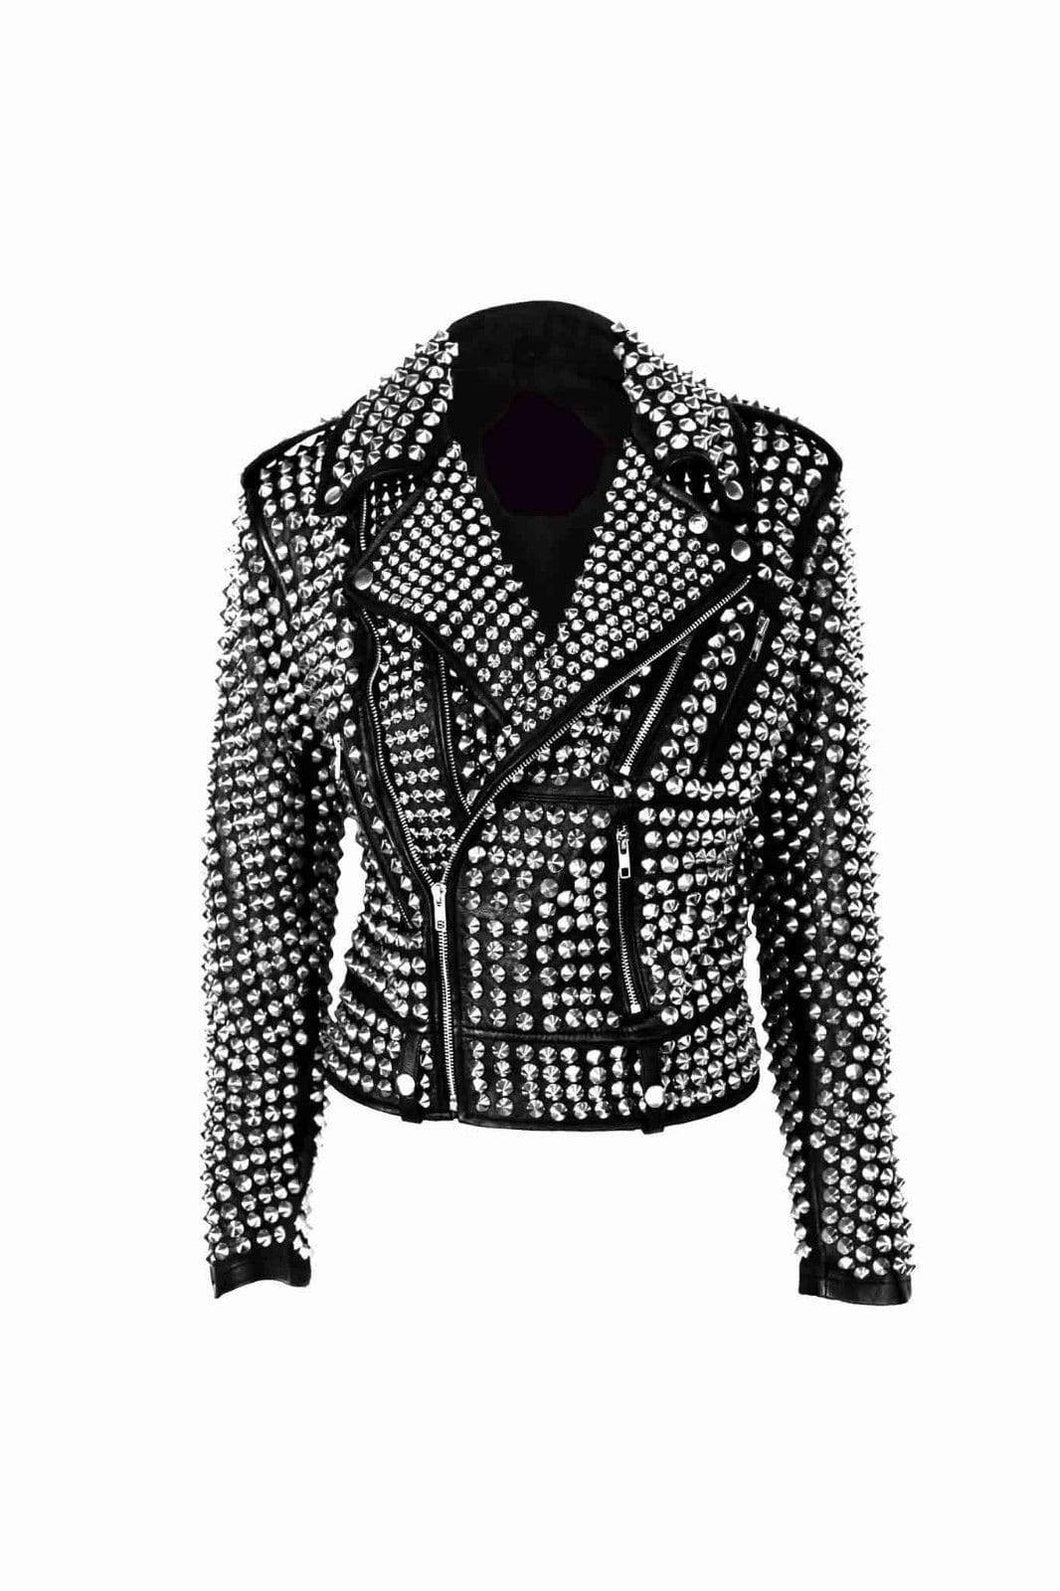 A.L.C Woman Full Silver Studded Punk Cowhide Leather Jacket - leathersguru